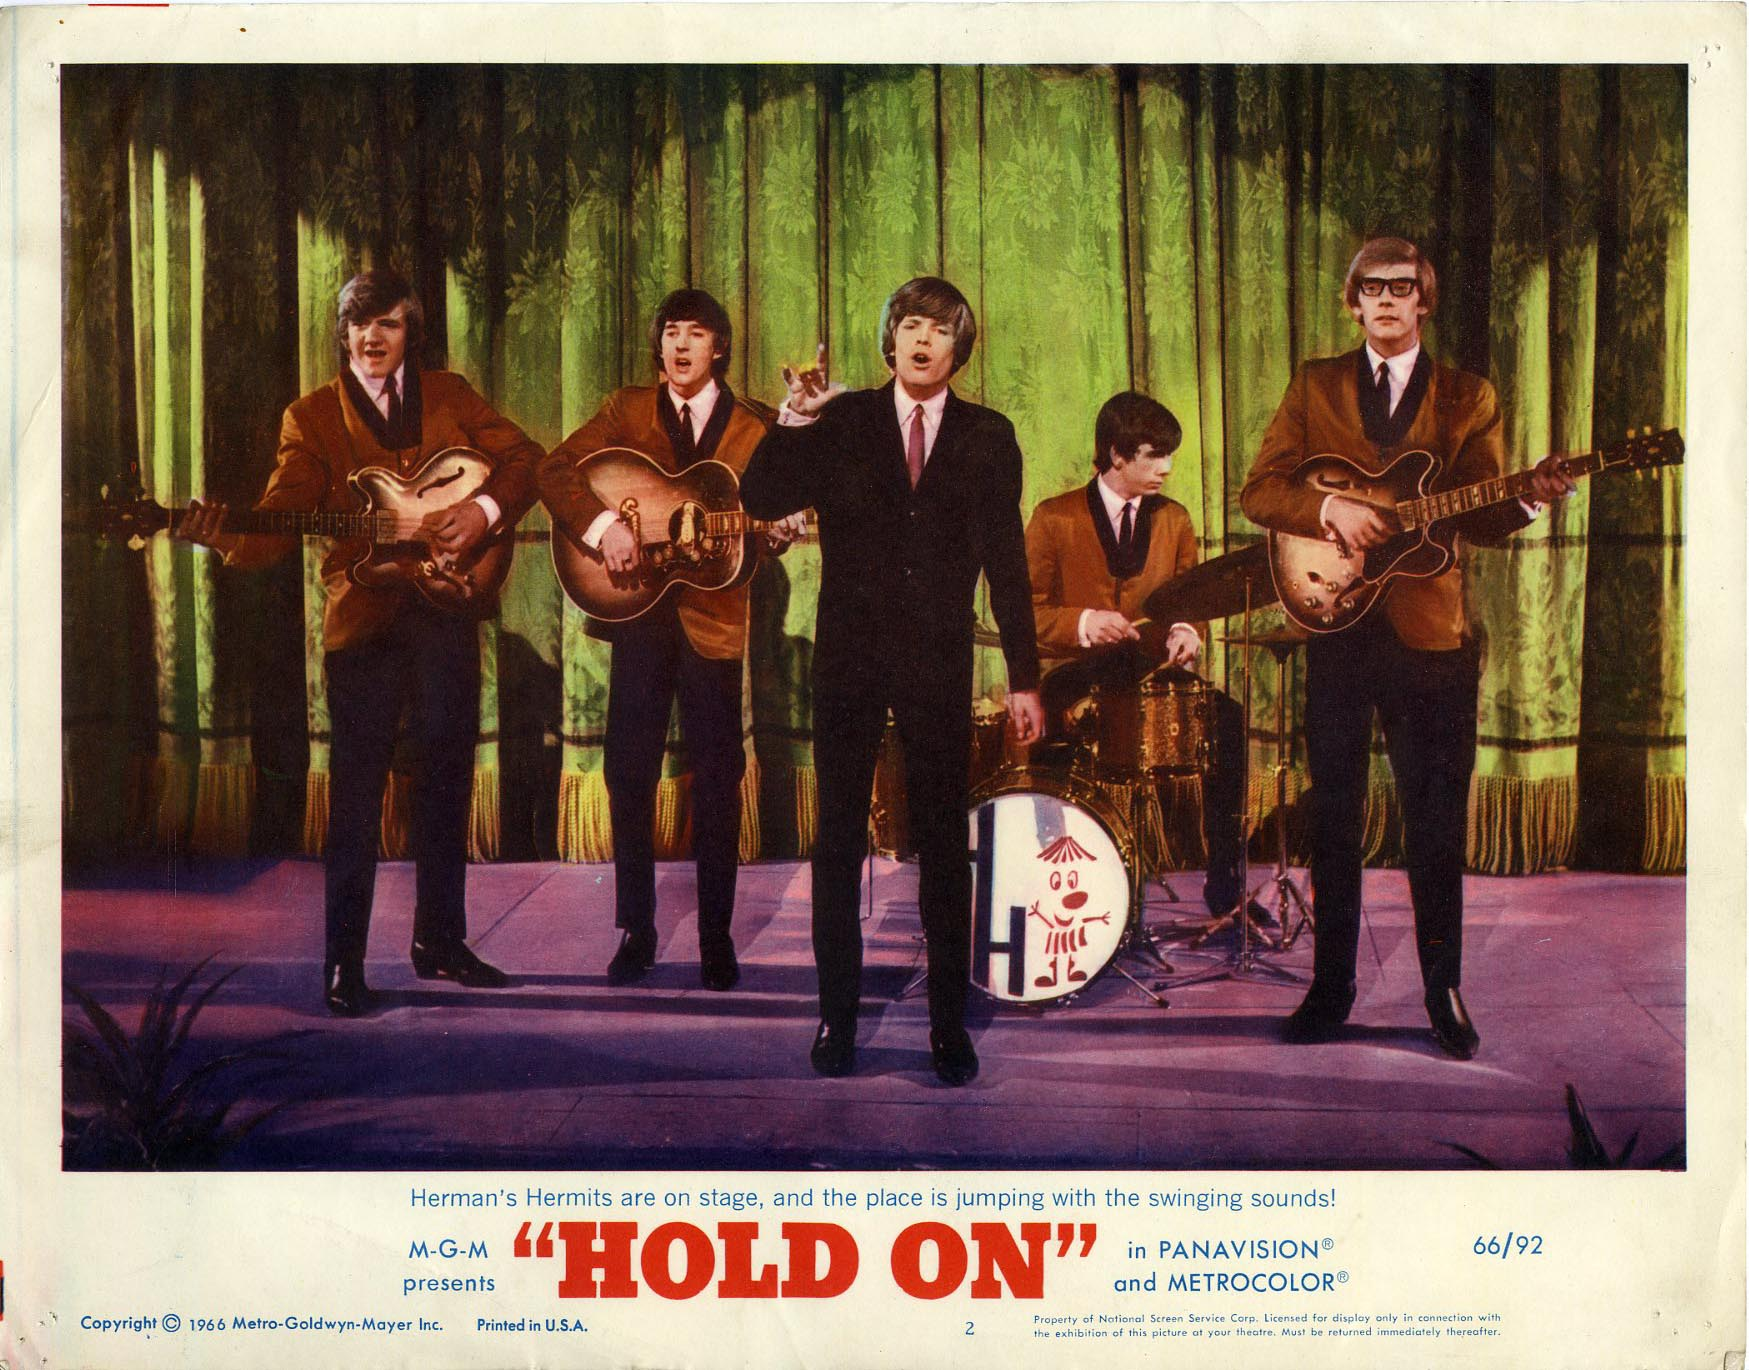 Herman's hermits 'Hold On!'